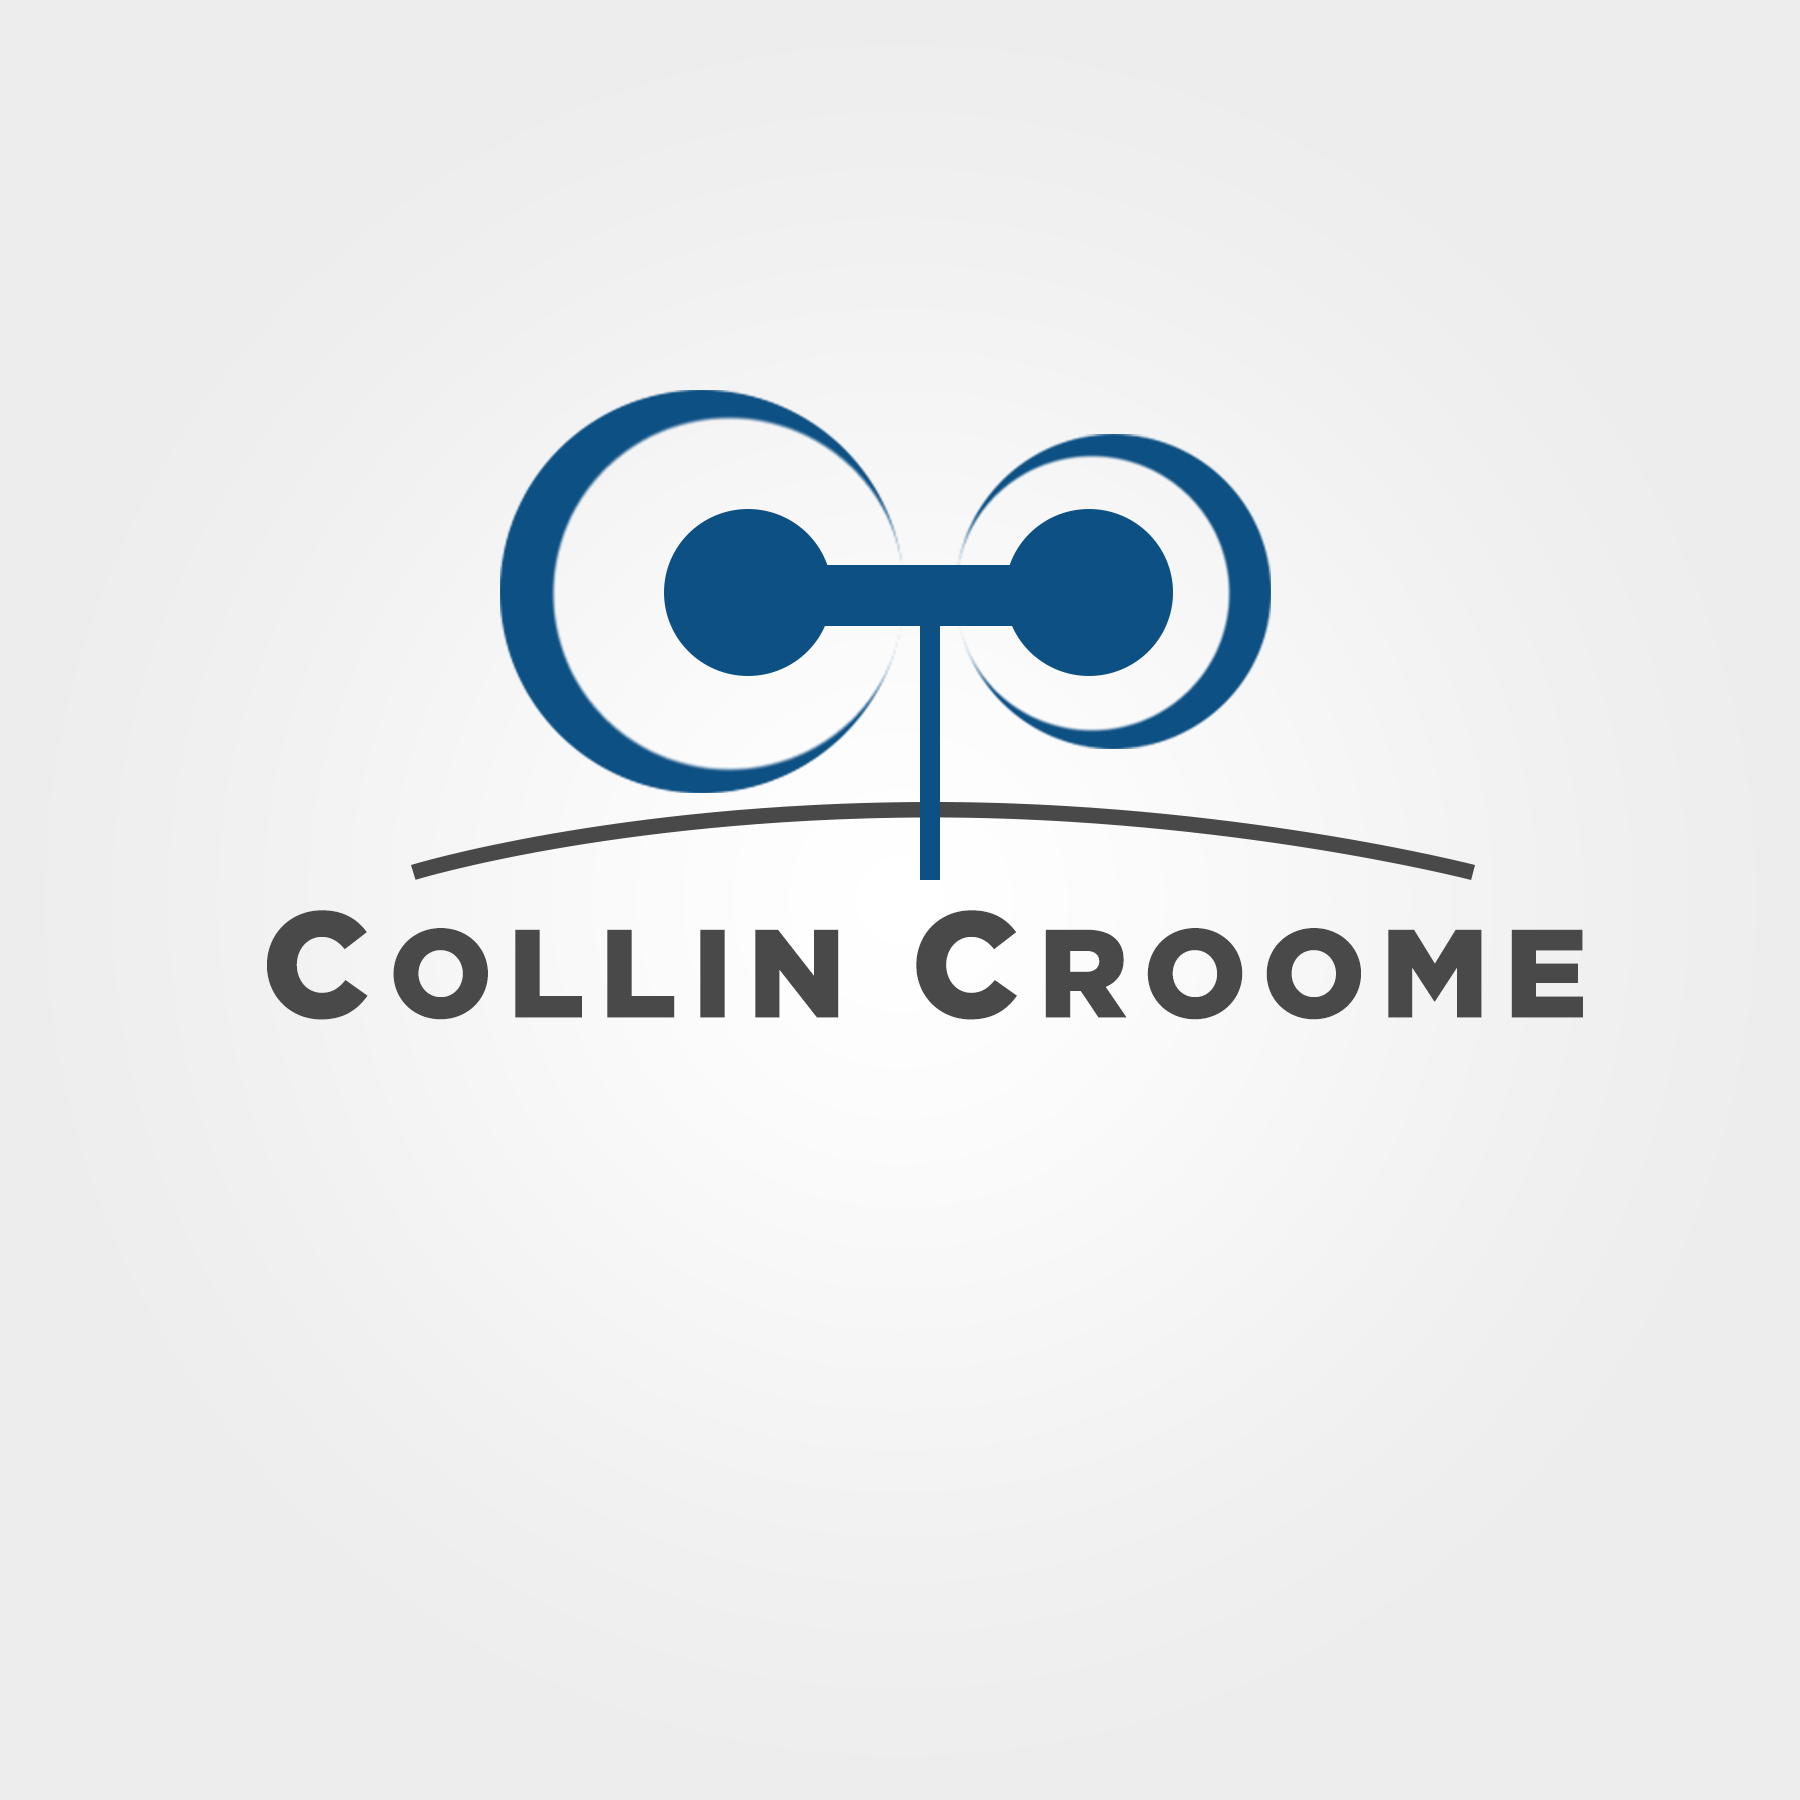 Logo Design by Lemuel Arvin Tanzo - Entry No. 40 in the Logo Design Contest Modern Logo Design for Collin Croome.